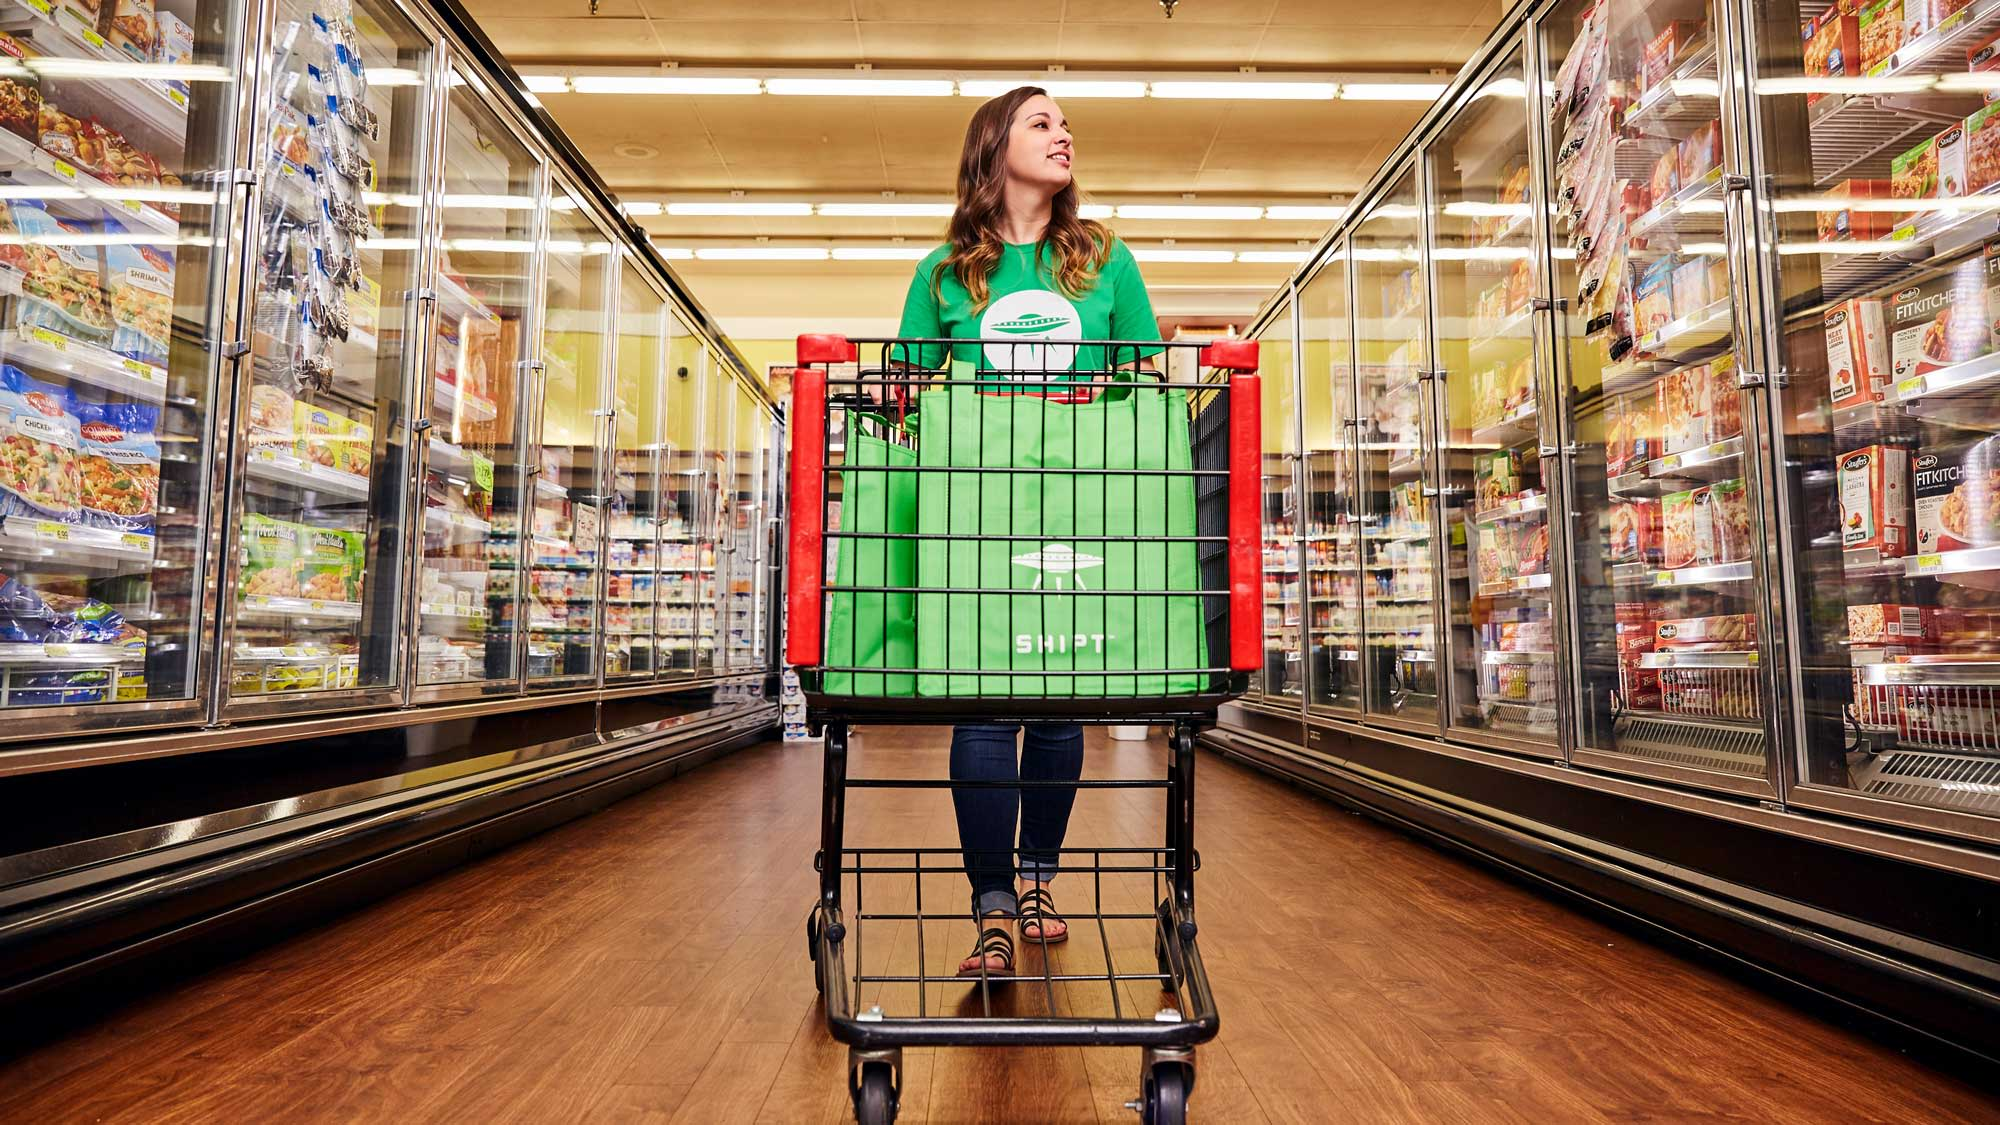 Target expands same-day delivery option in battle with Walmart, Amazon